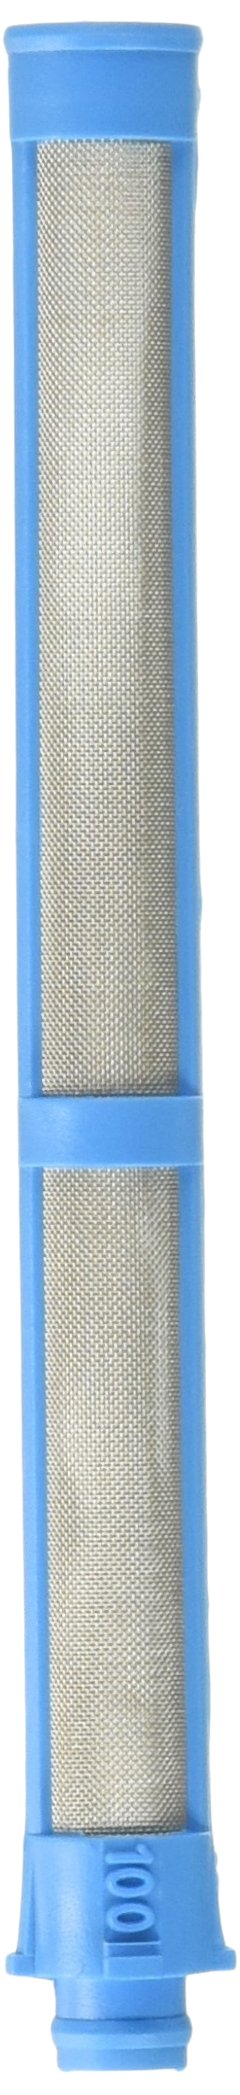 Graco 287033 Latex Gun Filter for Airless Paint Spray Guns with 100 Mesh, Blue